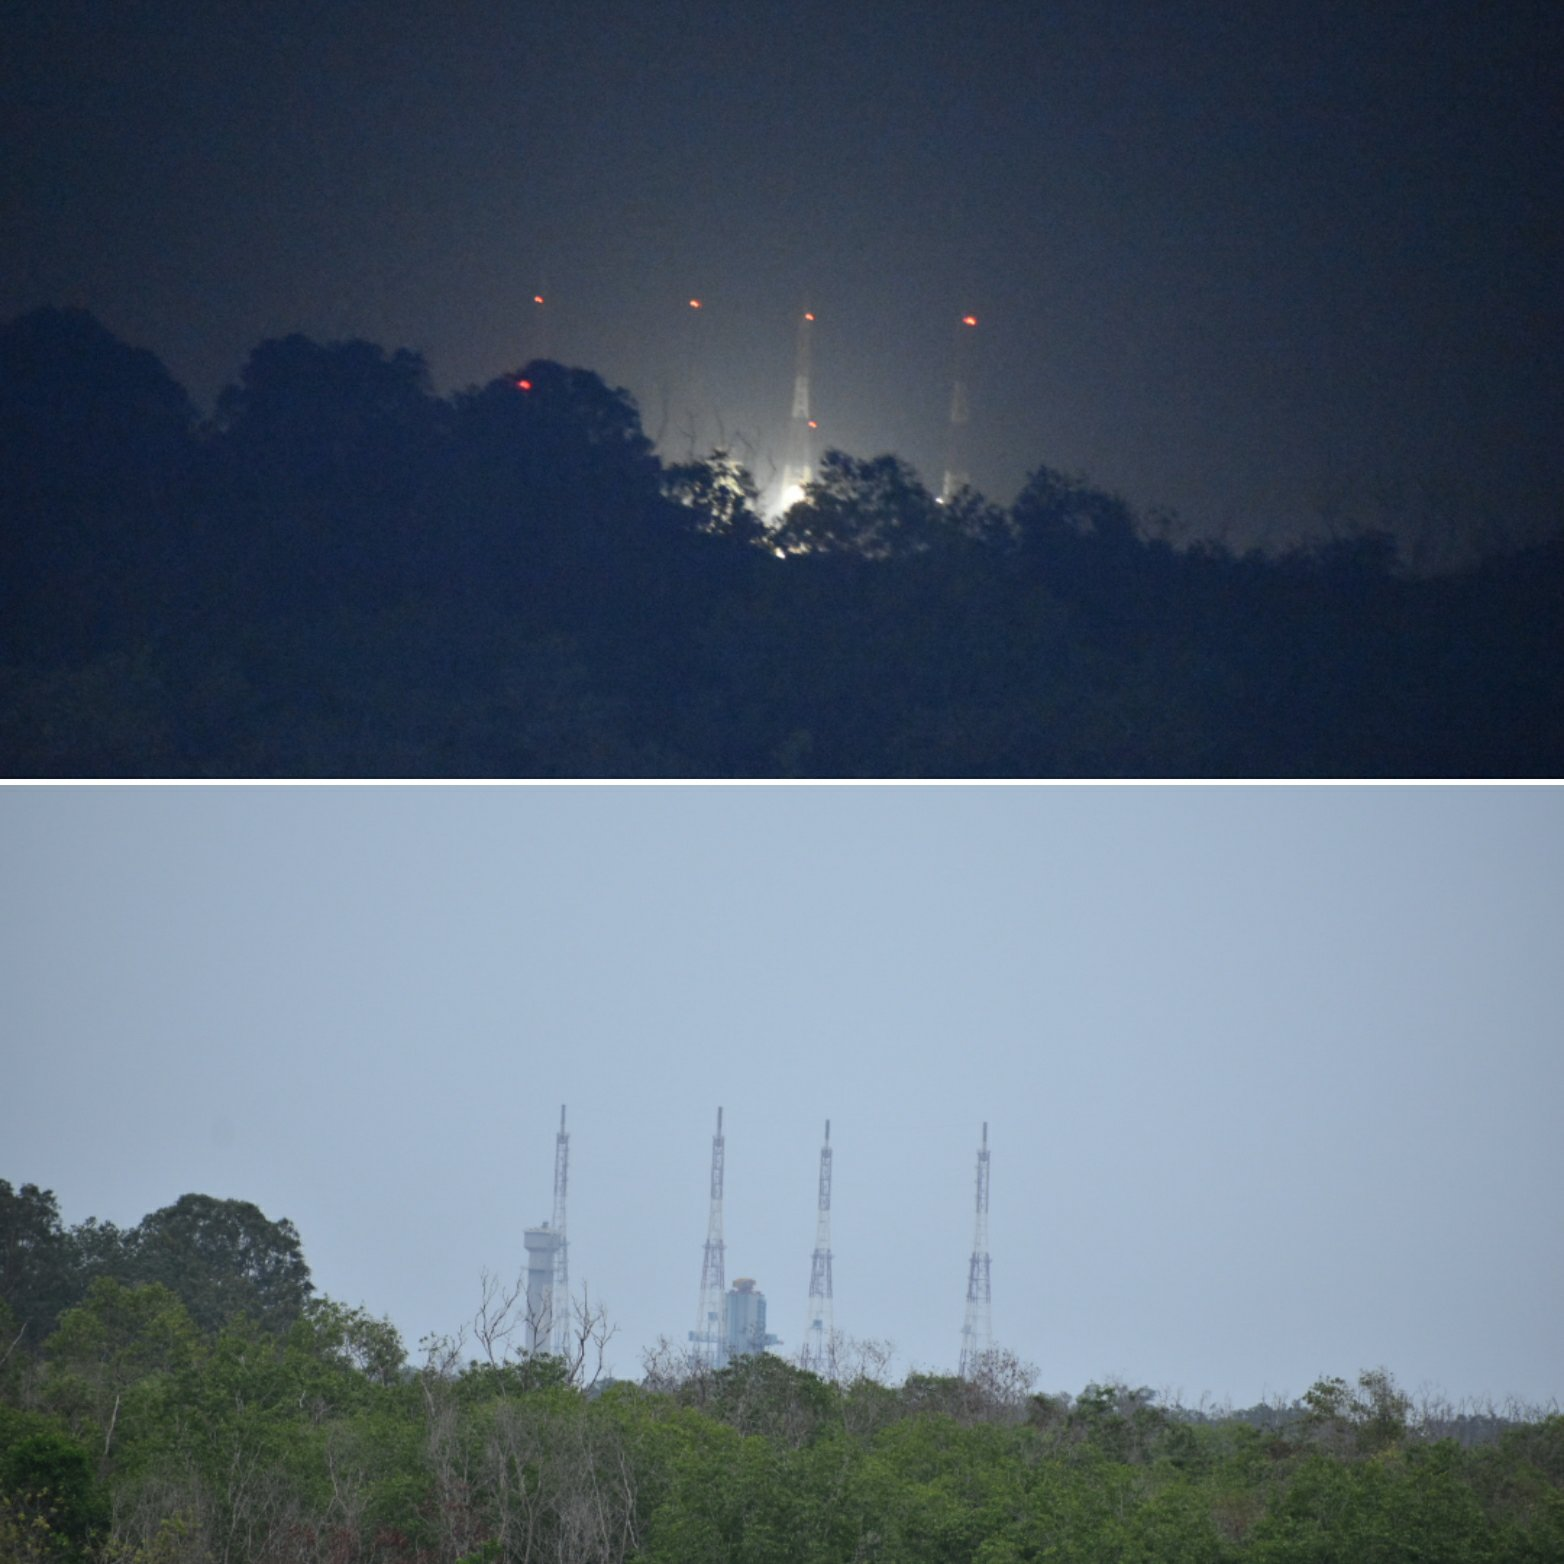 Top: Launch pad on 15-July-19; Below: launch pad on 22-July-19